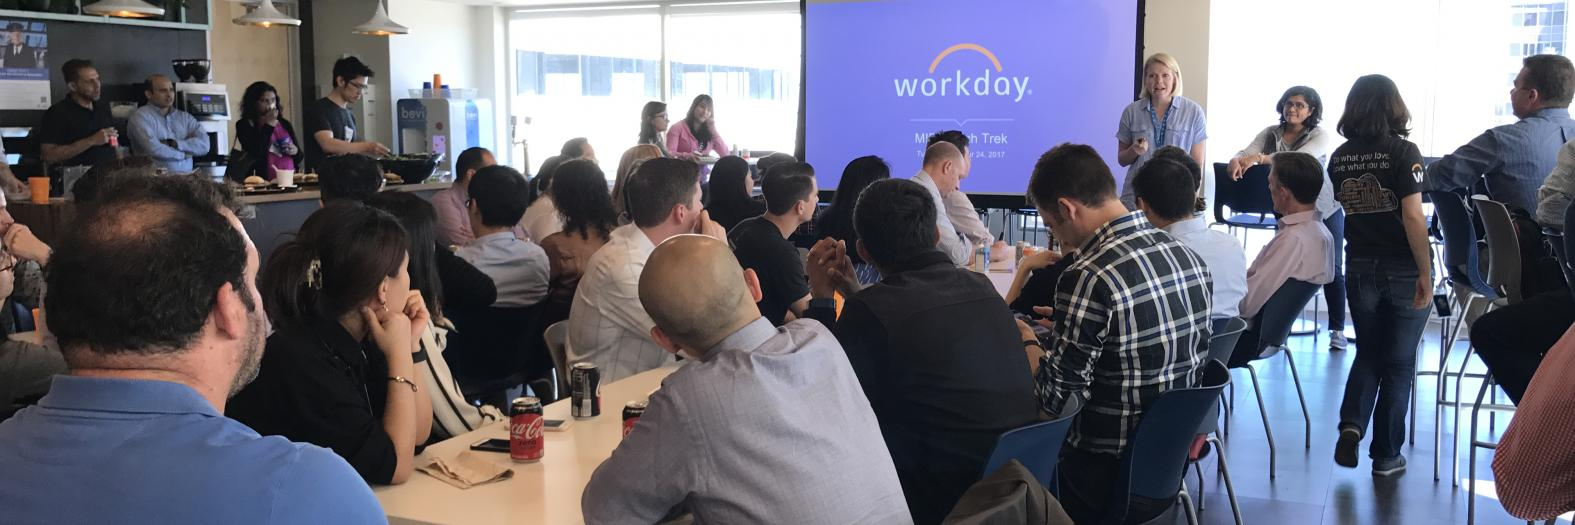 MIDS graduate students visiting the Workday data science team at the office in San Francisco from the 2017 Immersion Tech Treks